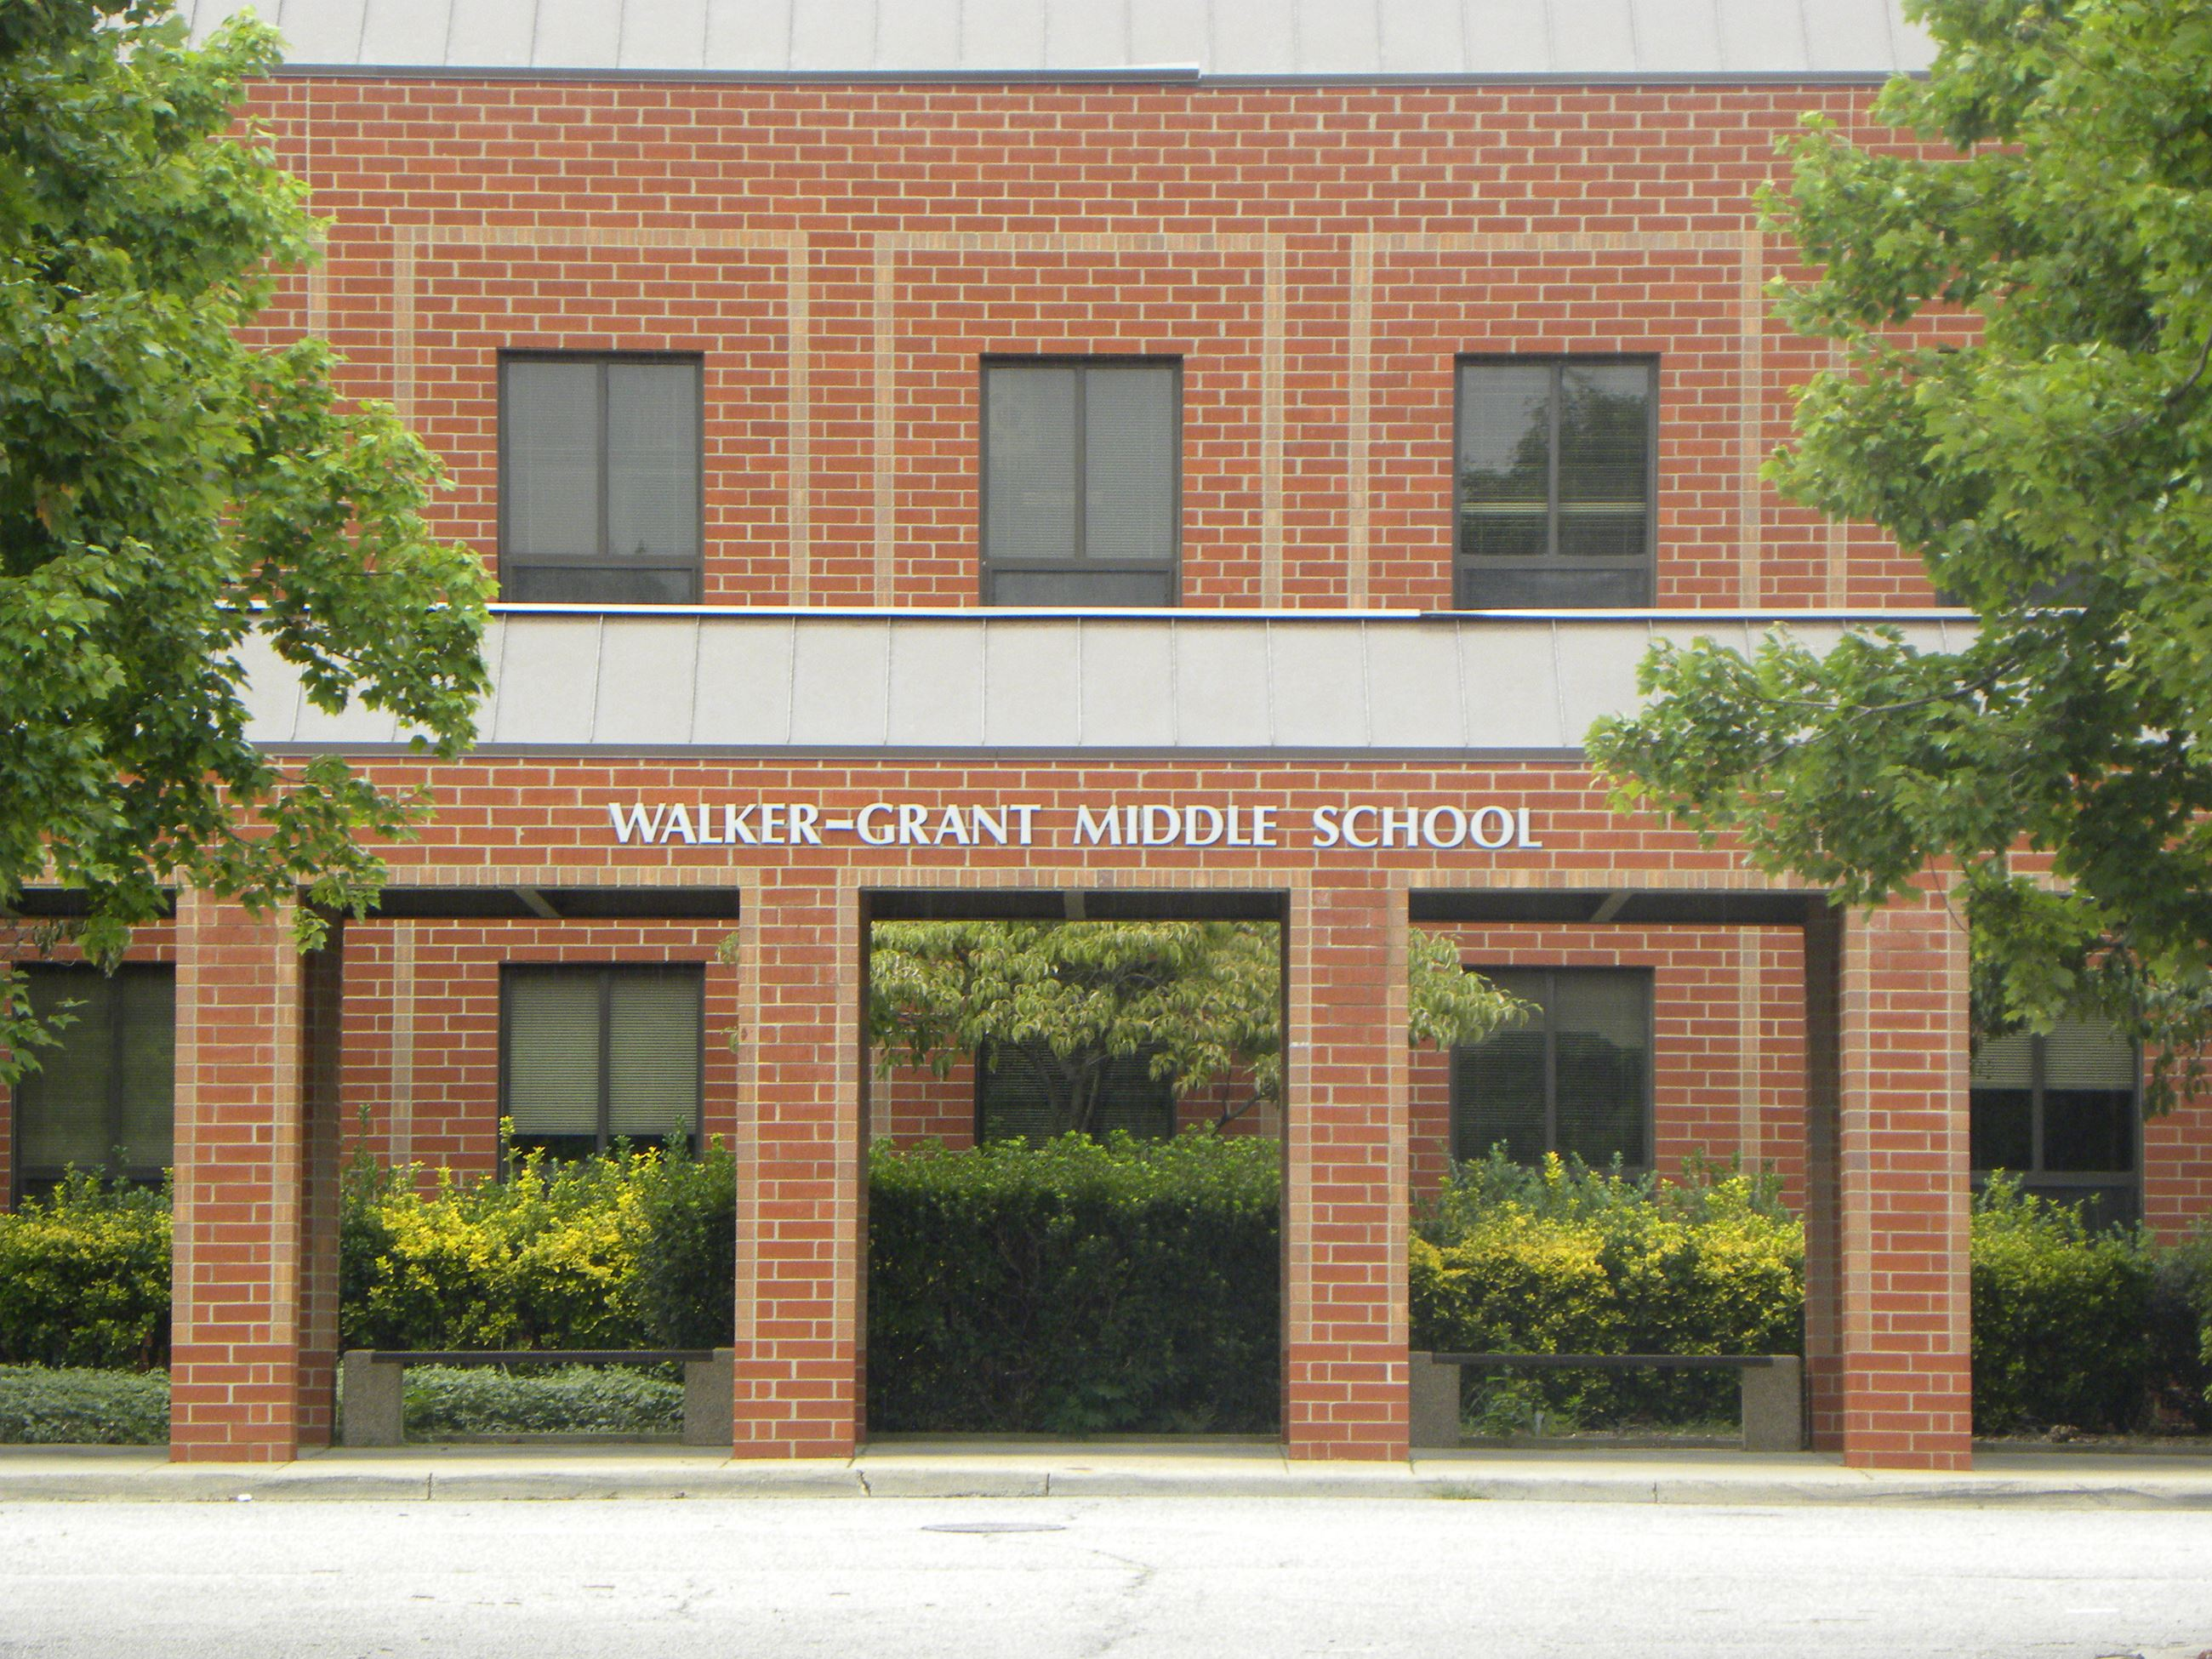 Walker Grant Middle School